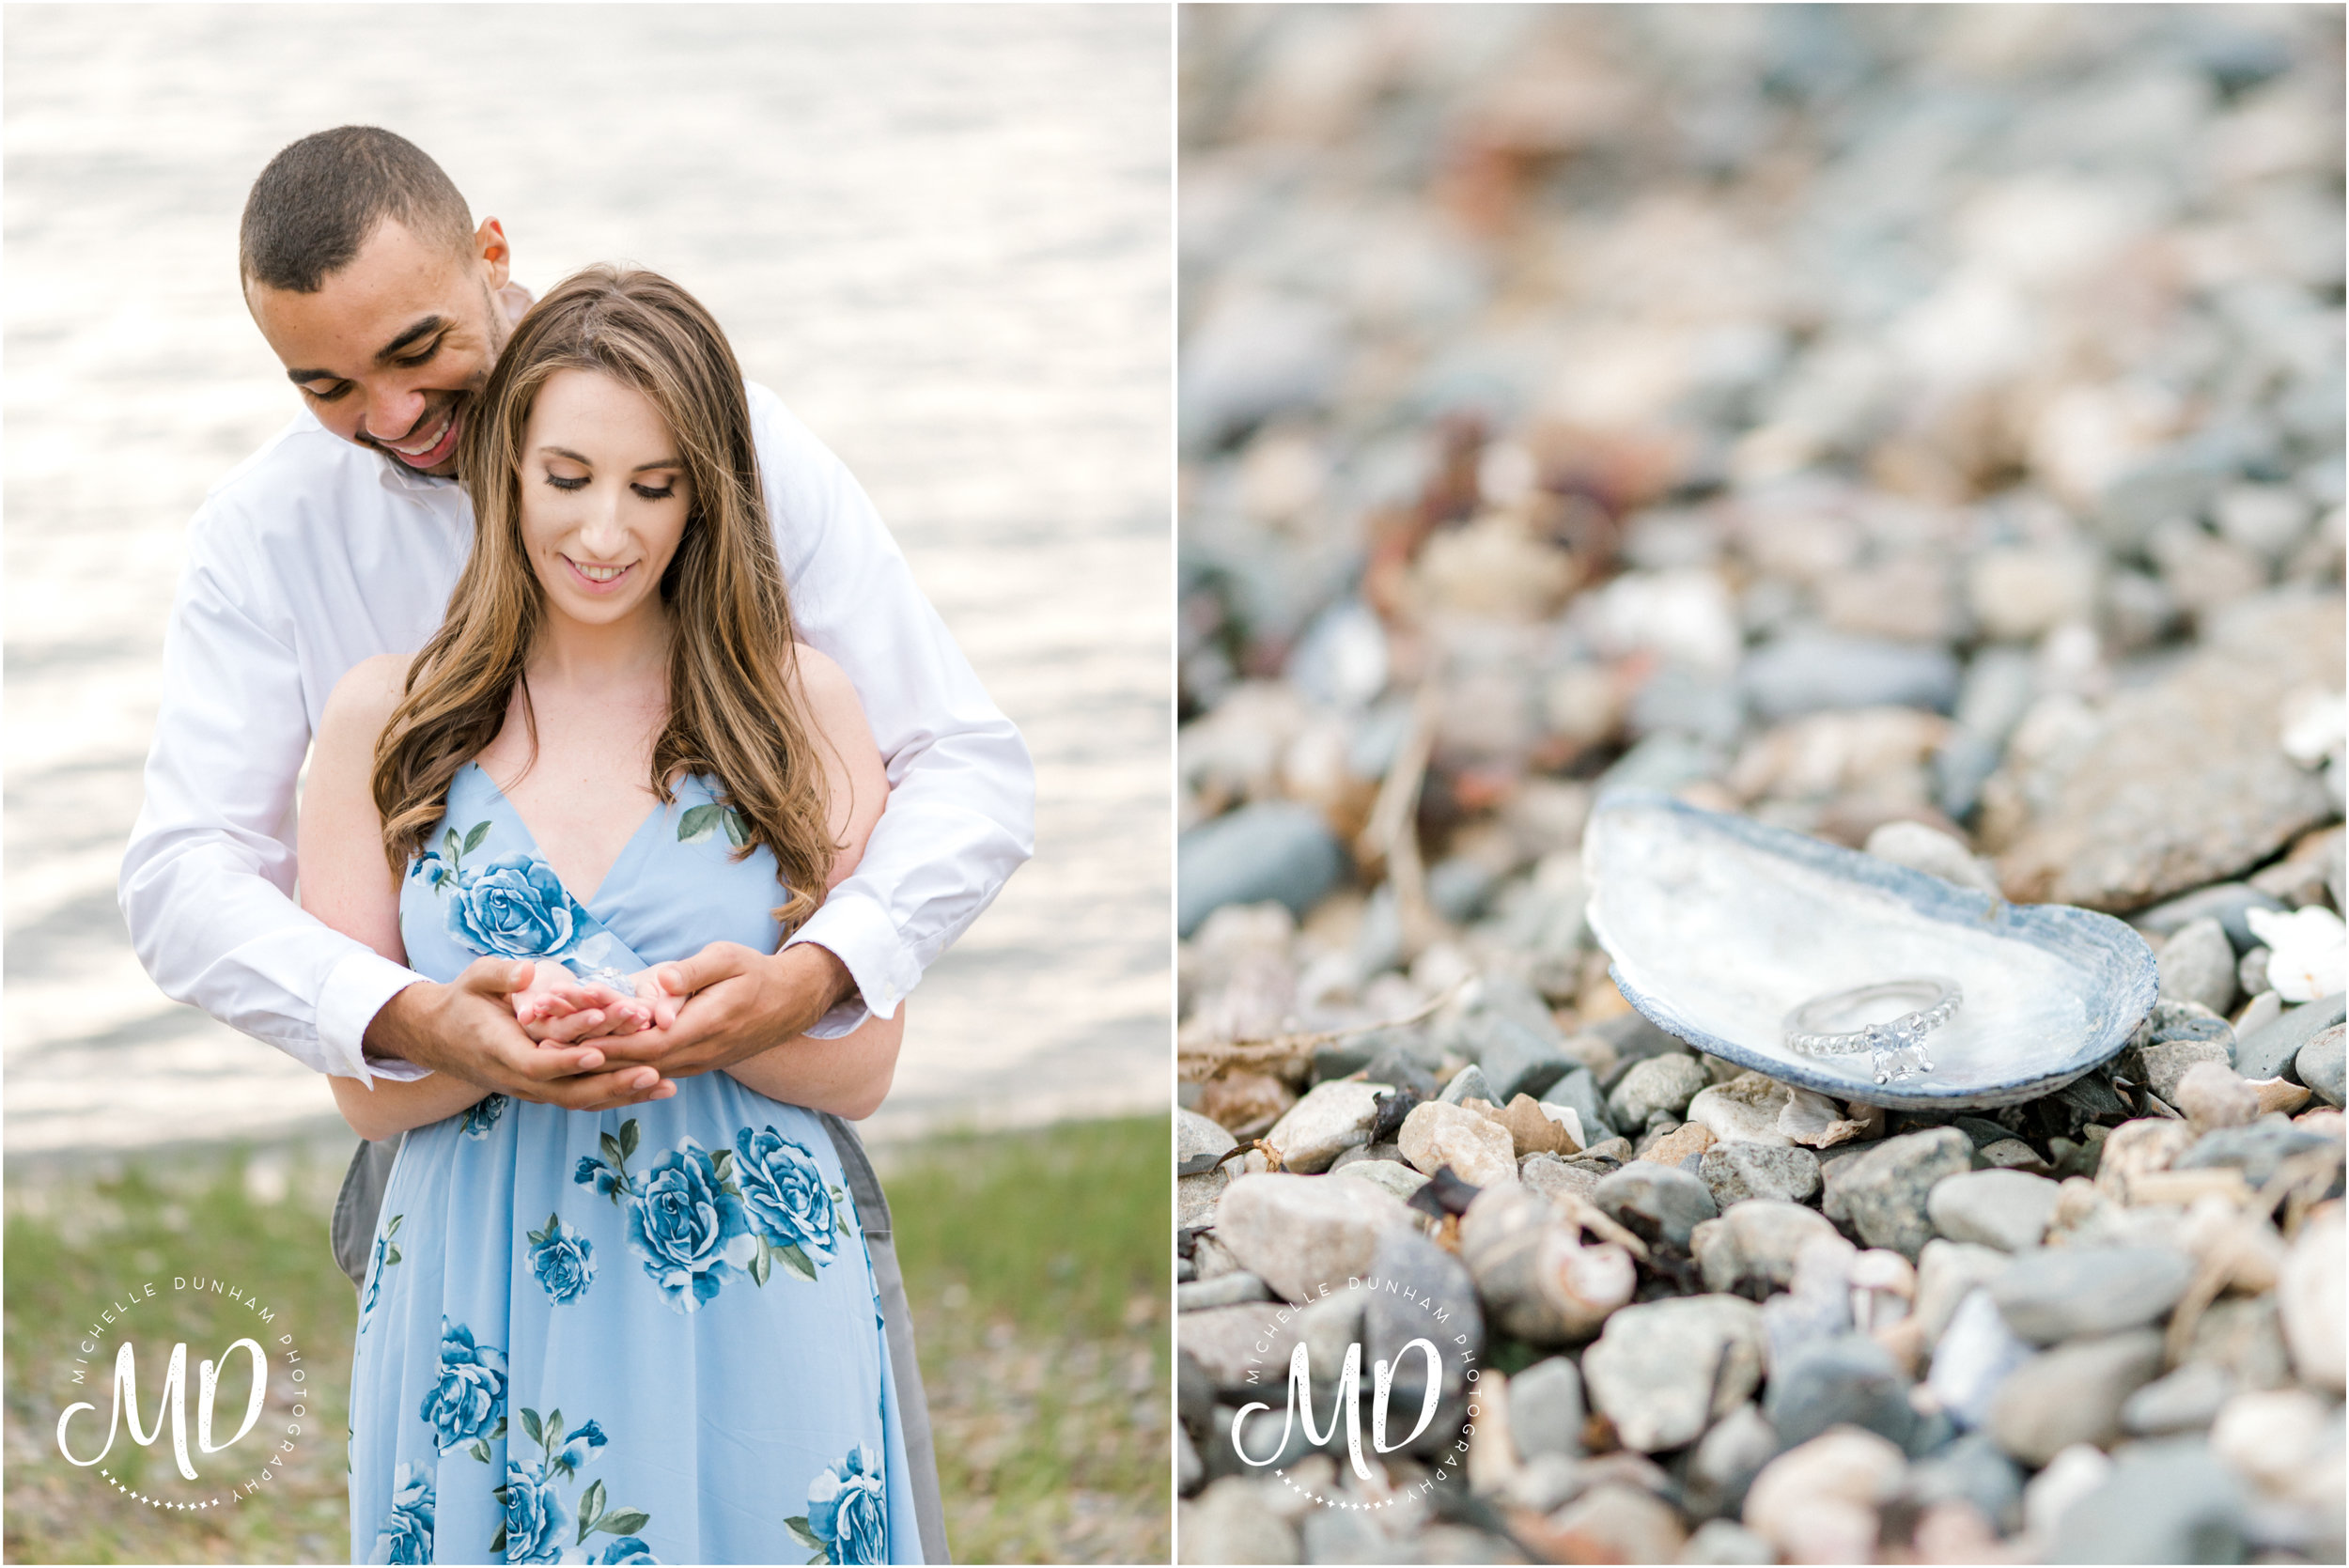 worlds_end_hingham_engagement_ring_boston_cape_cod_wedding_photographer_michelle_dunham_photography.jpg